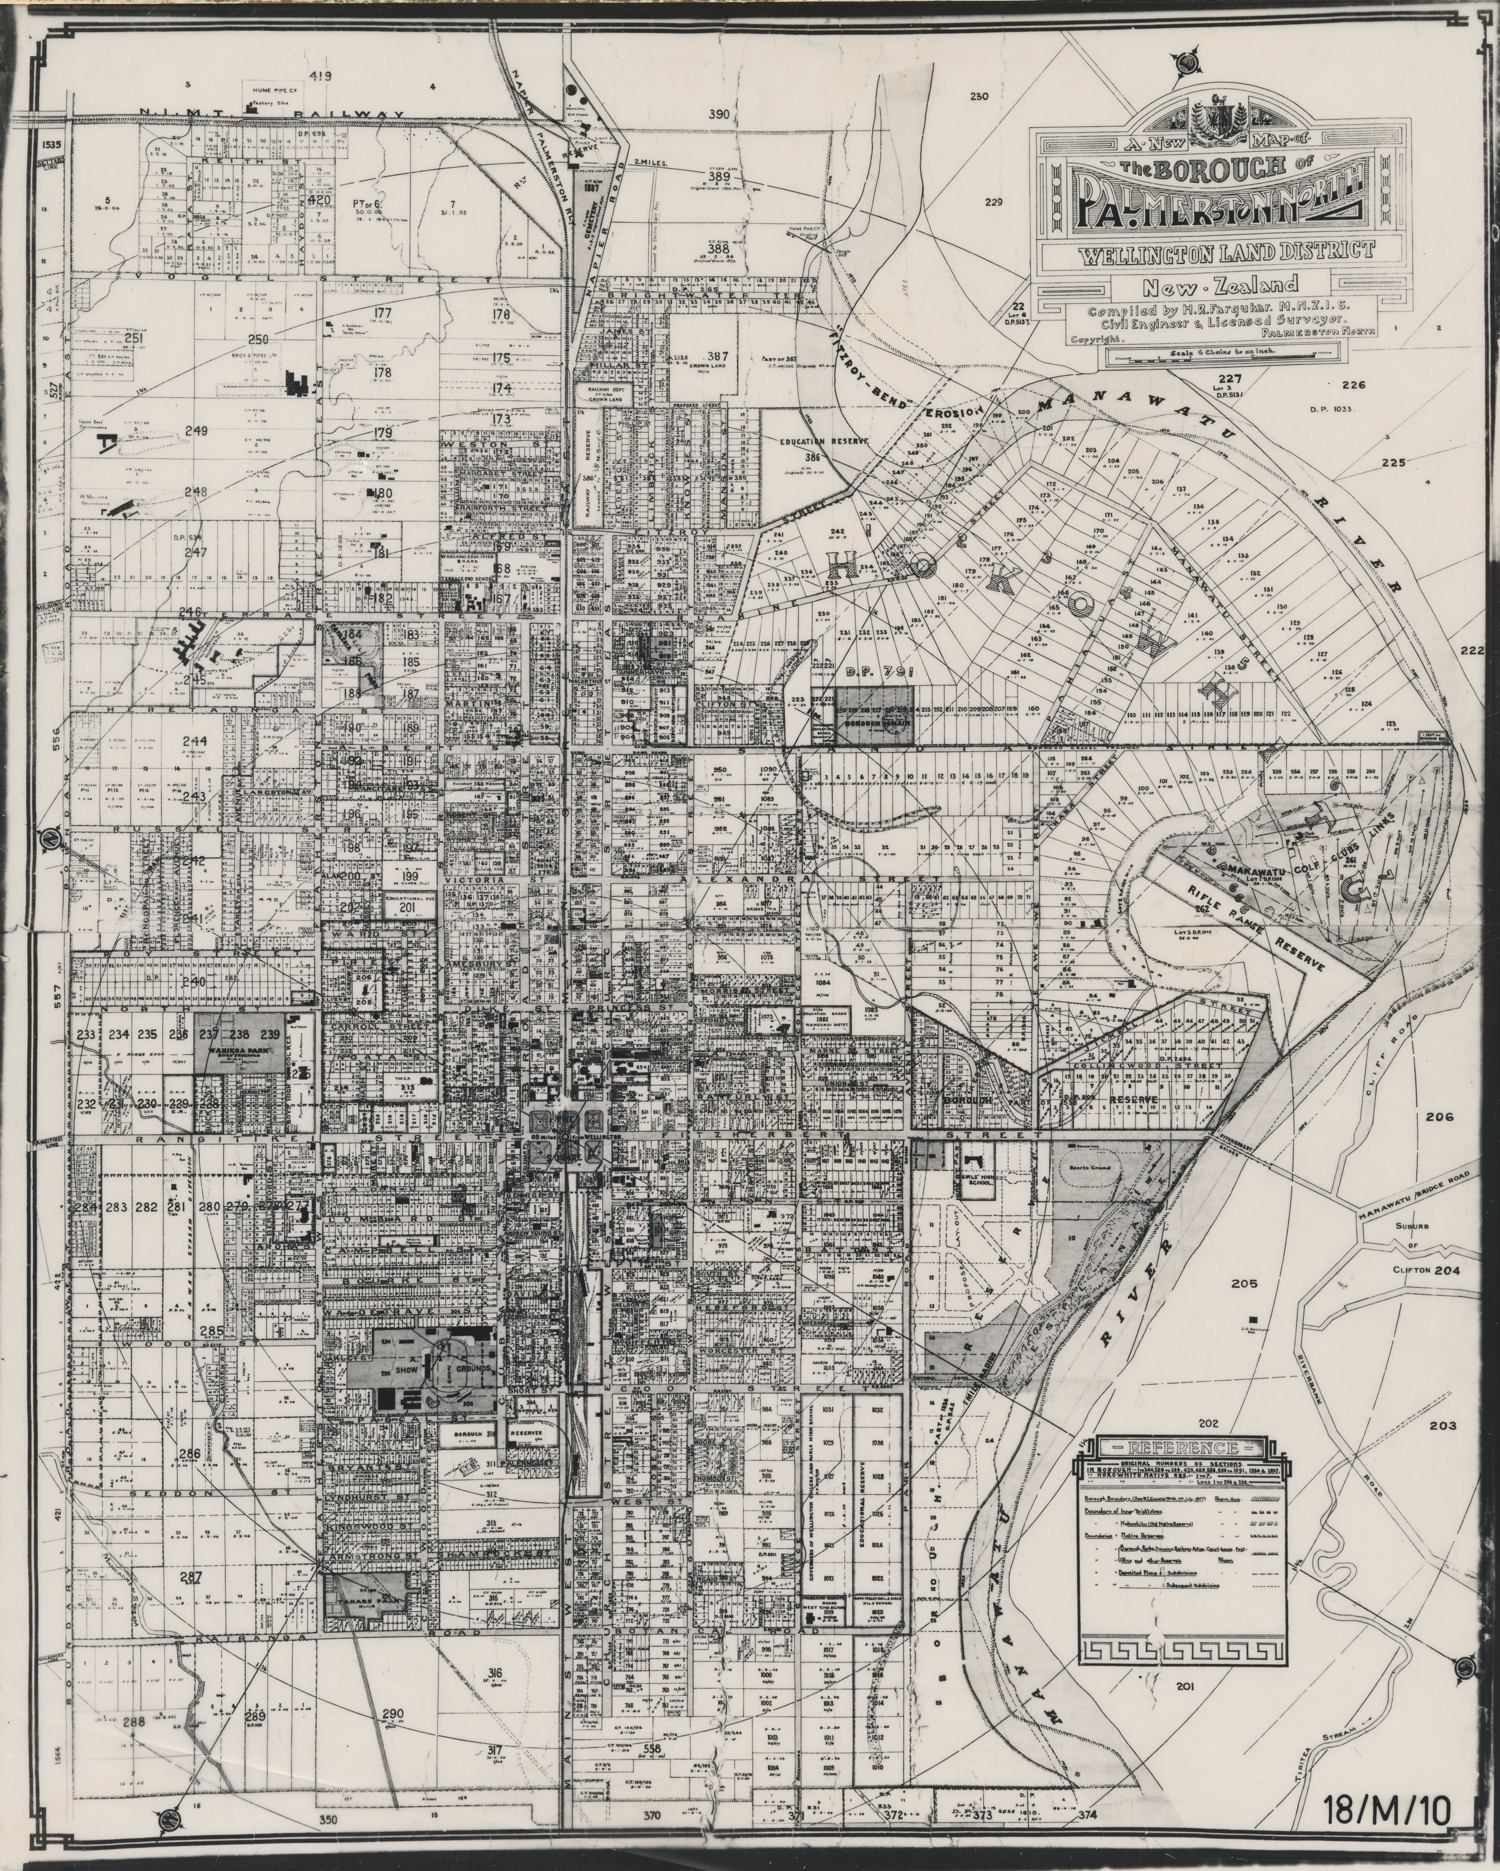 Map of Palmerston North early 1924. To view the full size image,  please view on our digital library Pataka Ipurangi: Manawatu Memory Online